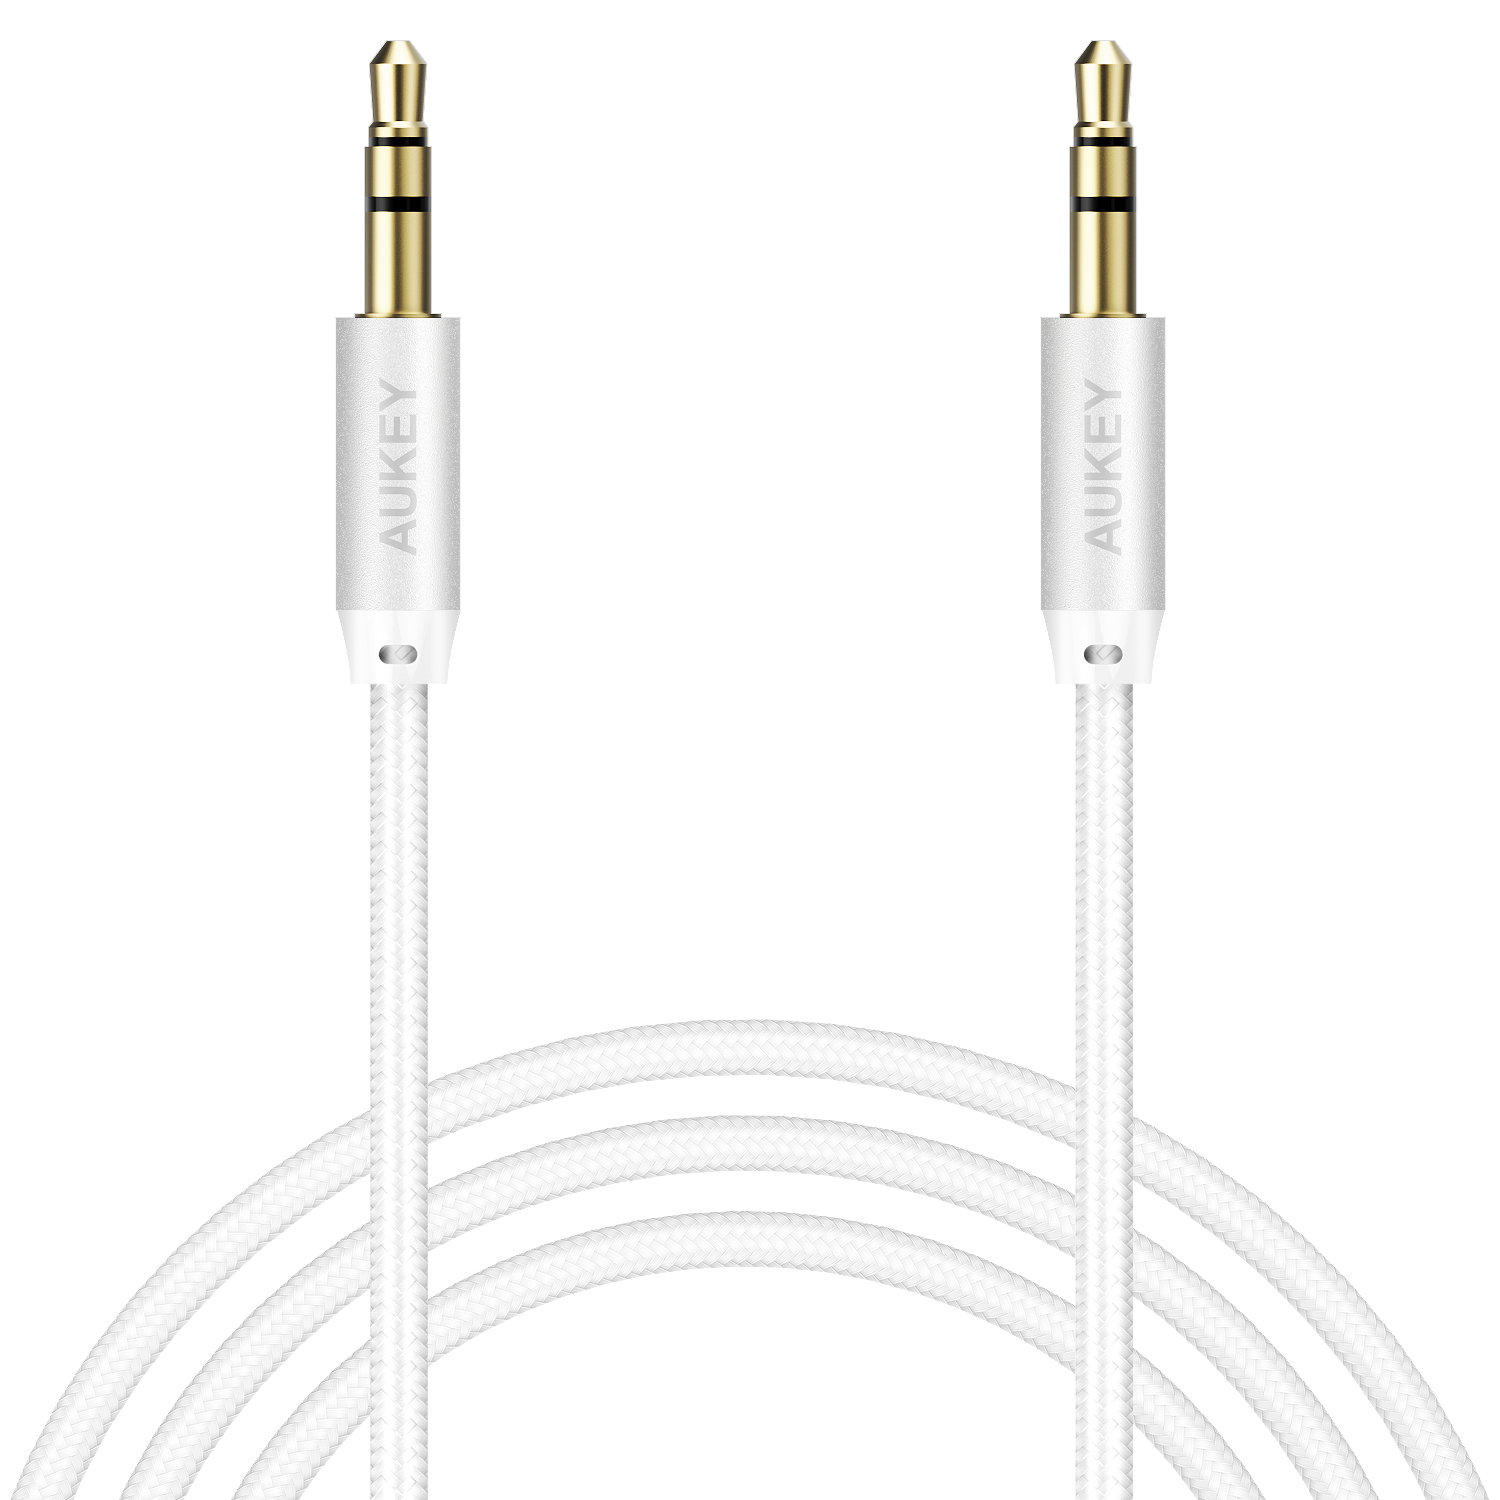 CB-V12 CABLE 1.2M AUX AUDIO GOLD PLATE BRAIDED NYLON